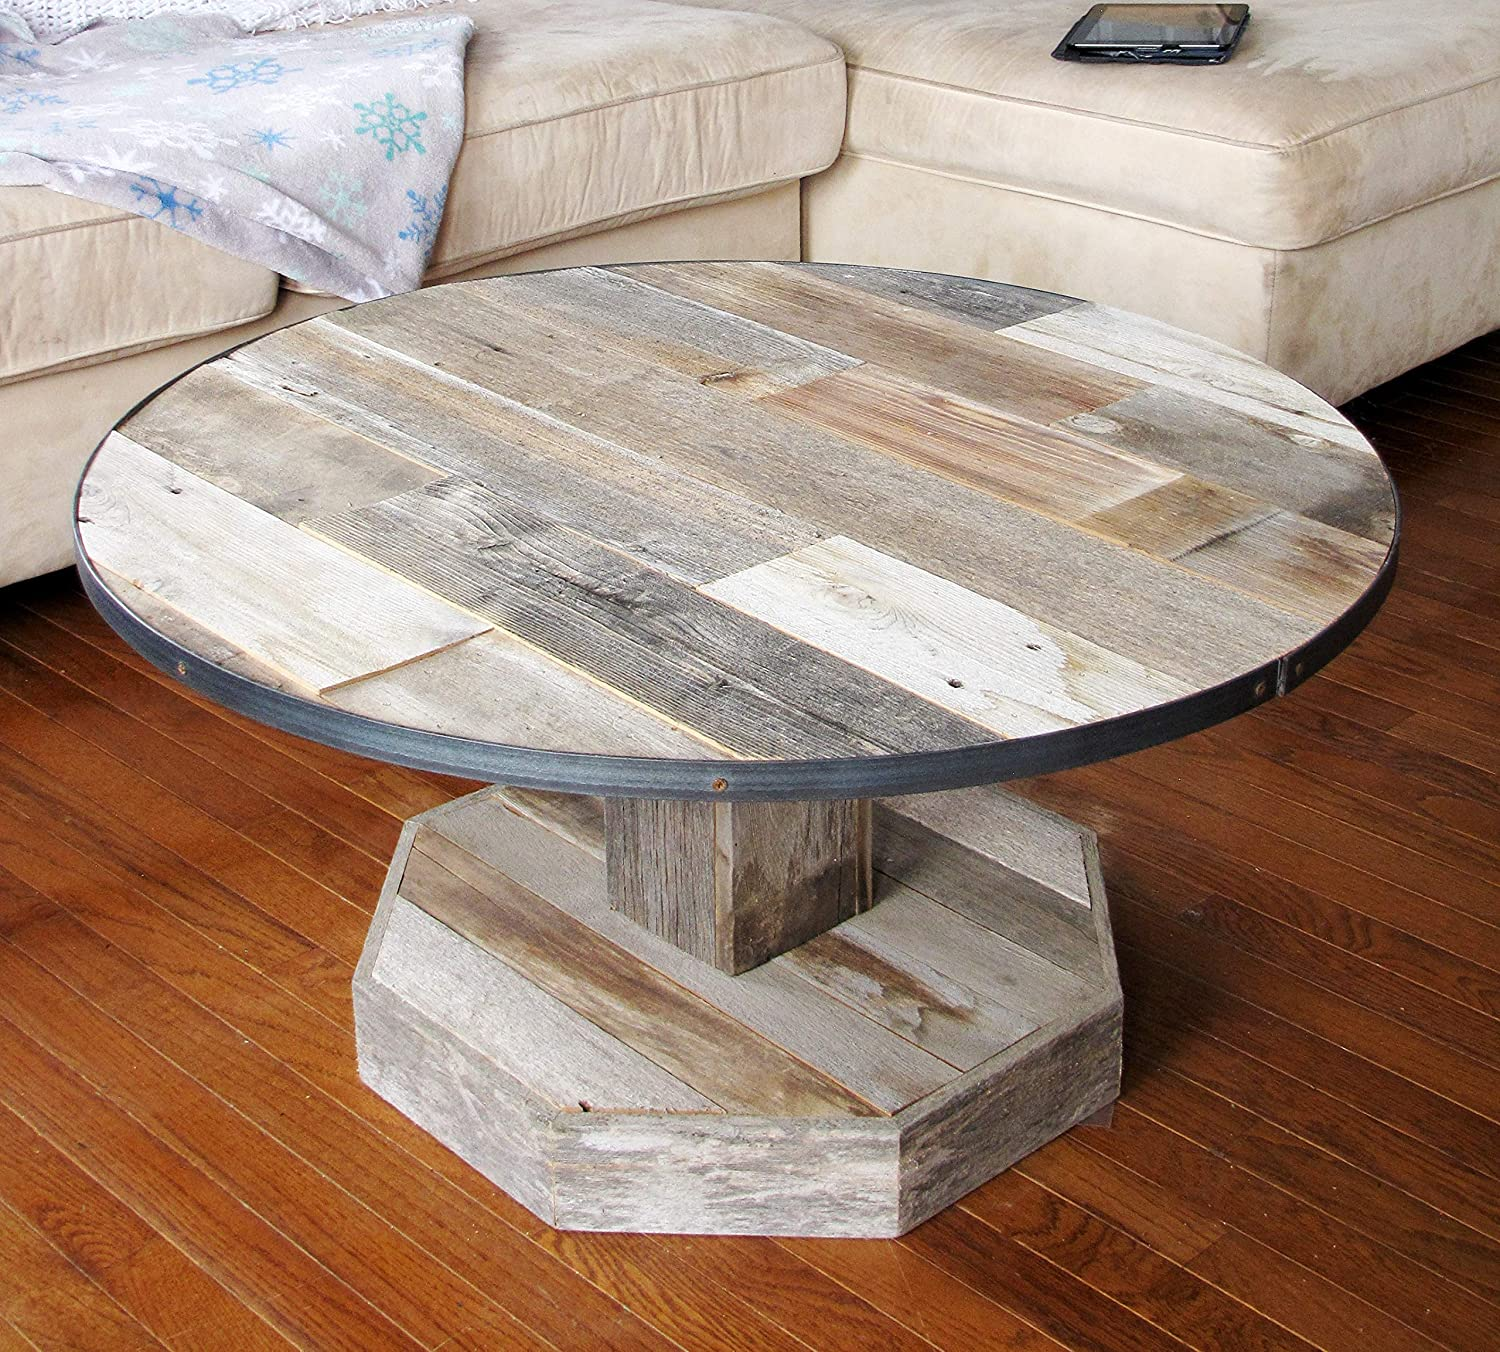 Round Rustic Reclaimed Wood Coffee Table